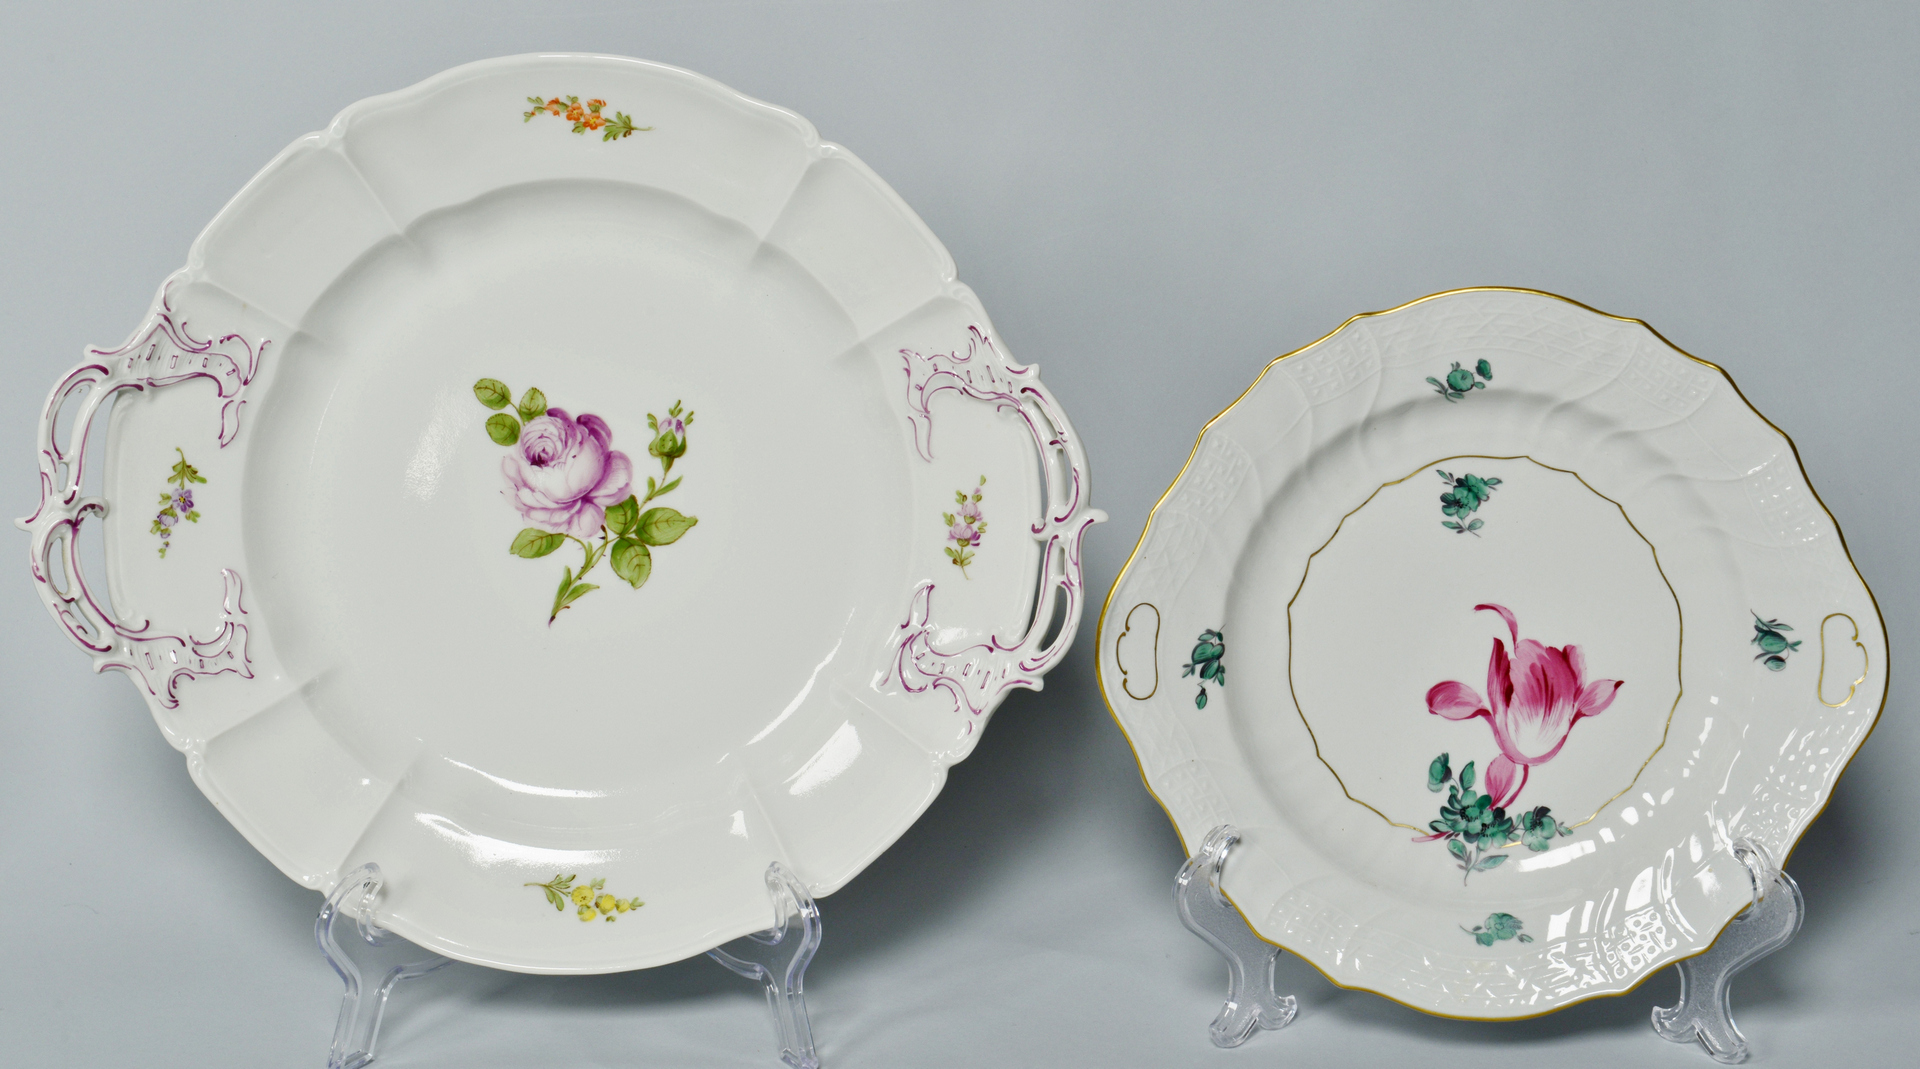 Lot 3088356: Large assortment of European porcelain